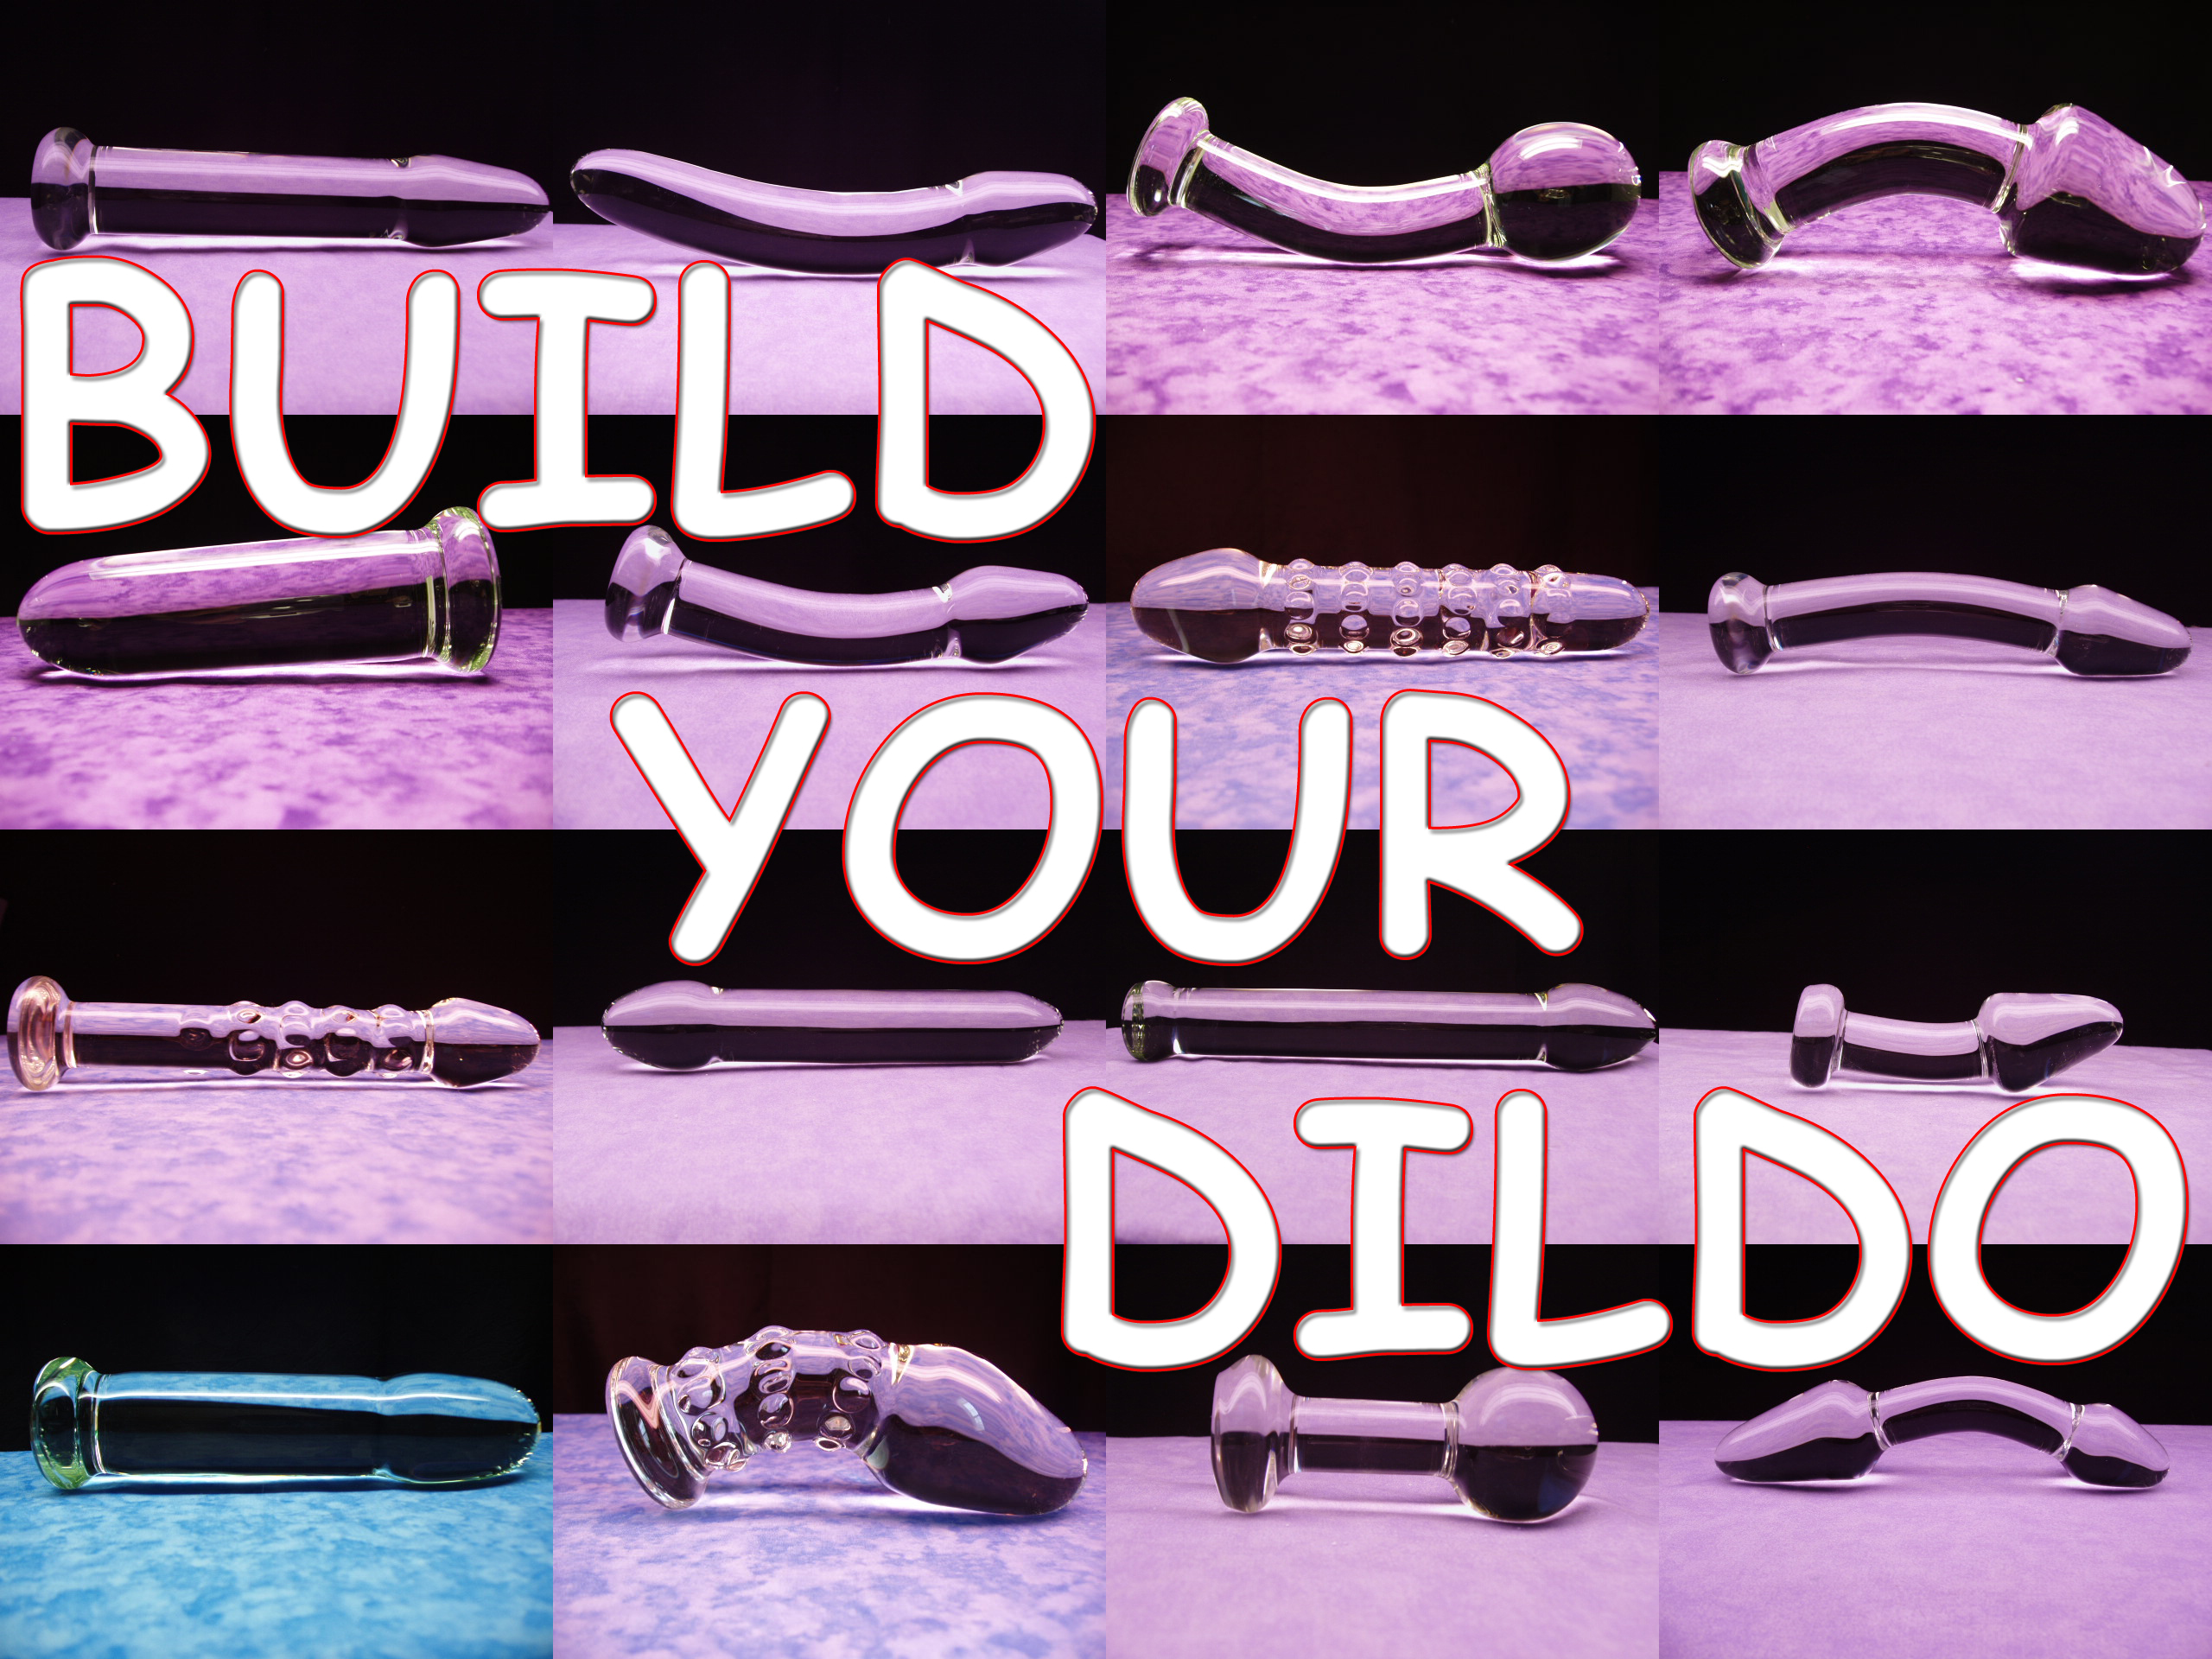 Build Your Dildo